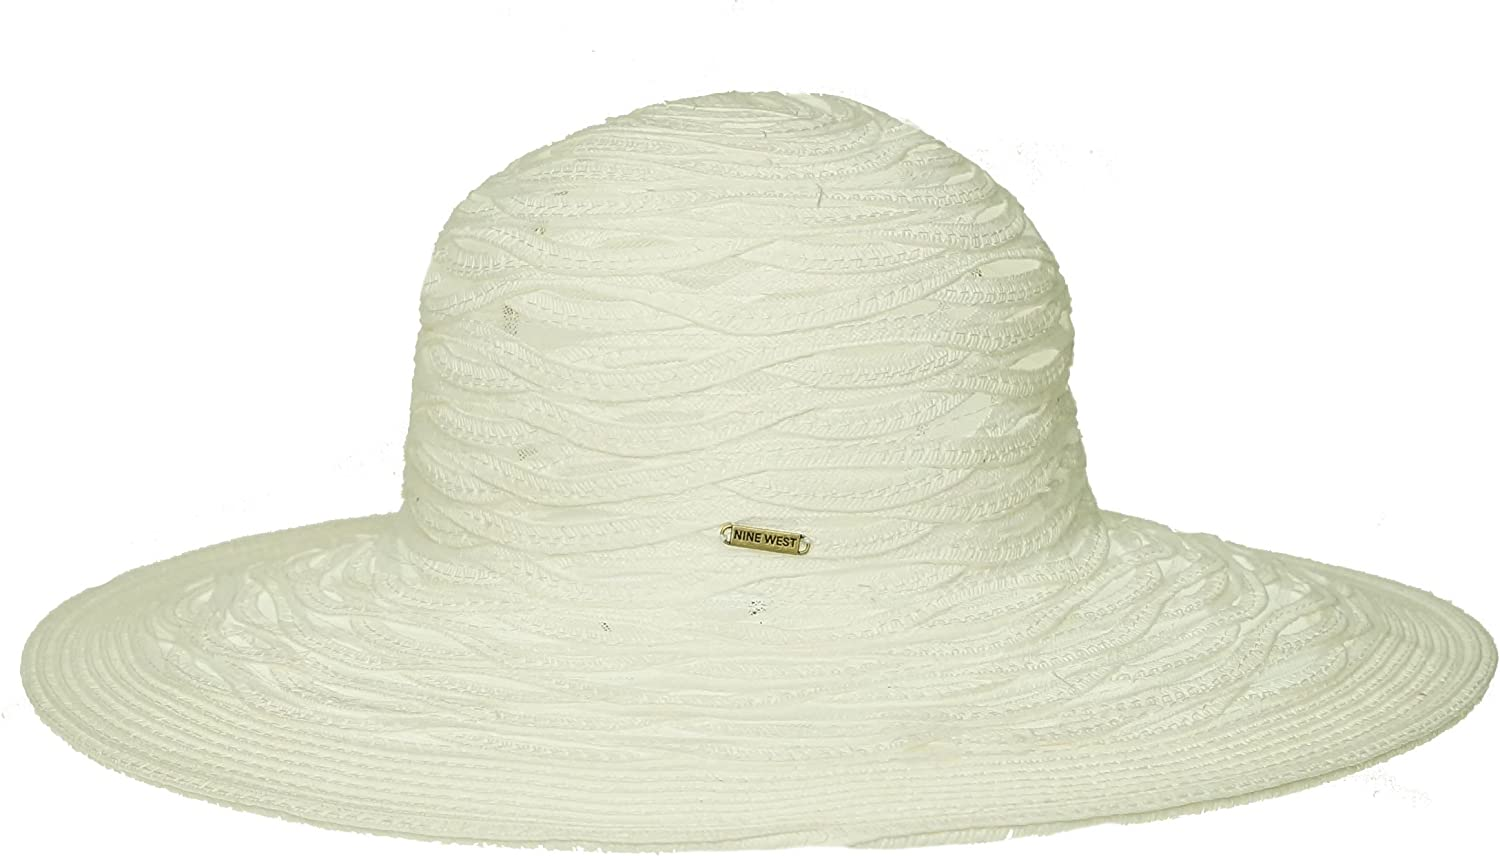 Nine West Sheer Open Super Floppy Hat White ONE SIZE